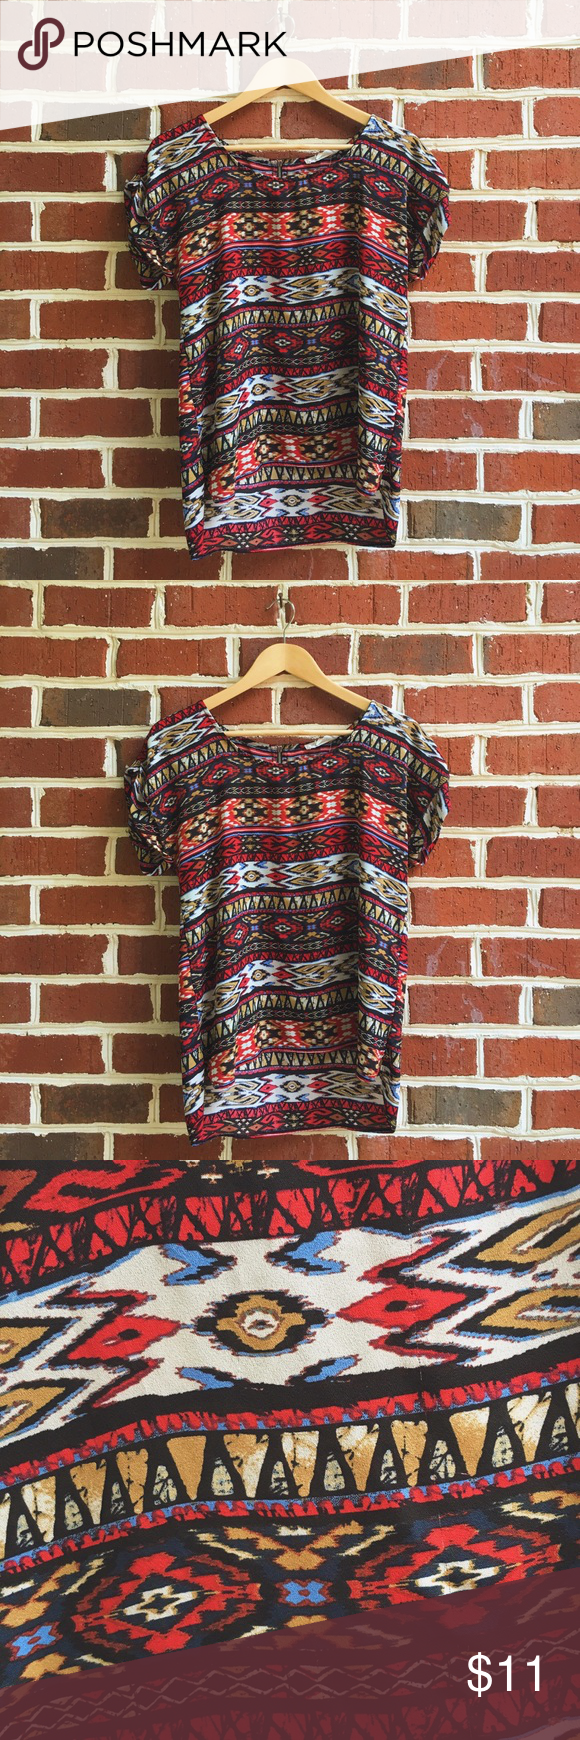 High-Low Aztec Blouse Aztec/Tribal patterned blouse with a high-low cut. Comfy, loose, and boxy fitting blouse with cuffed sleeves and a scoop neck. The back features a black and gold zipper which definitely gives it an edgy factor! Lastly, it especially looks great paired with white jeans! Pink Rose Tops Blouses